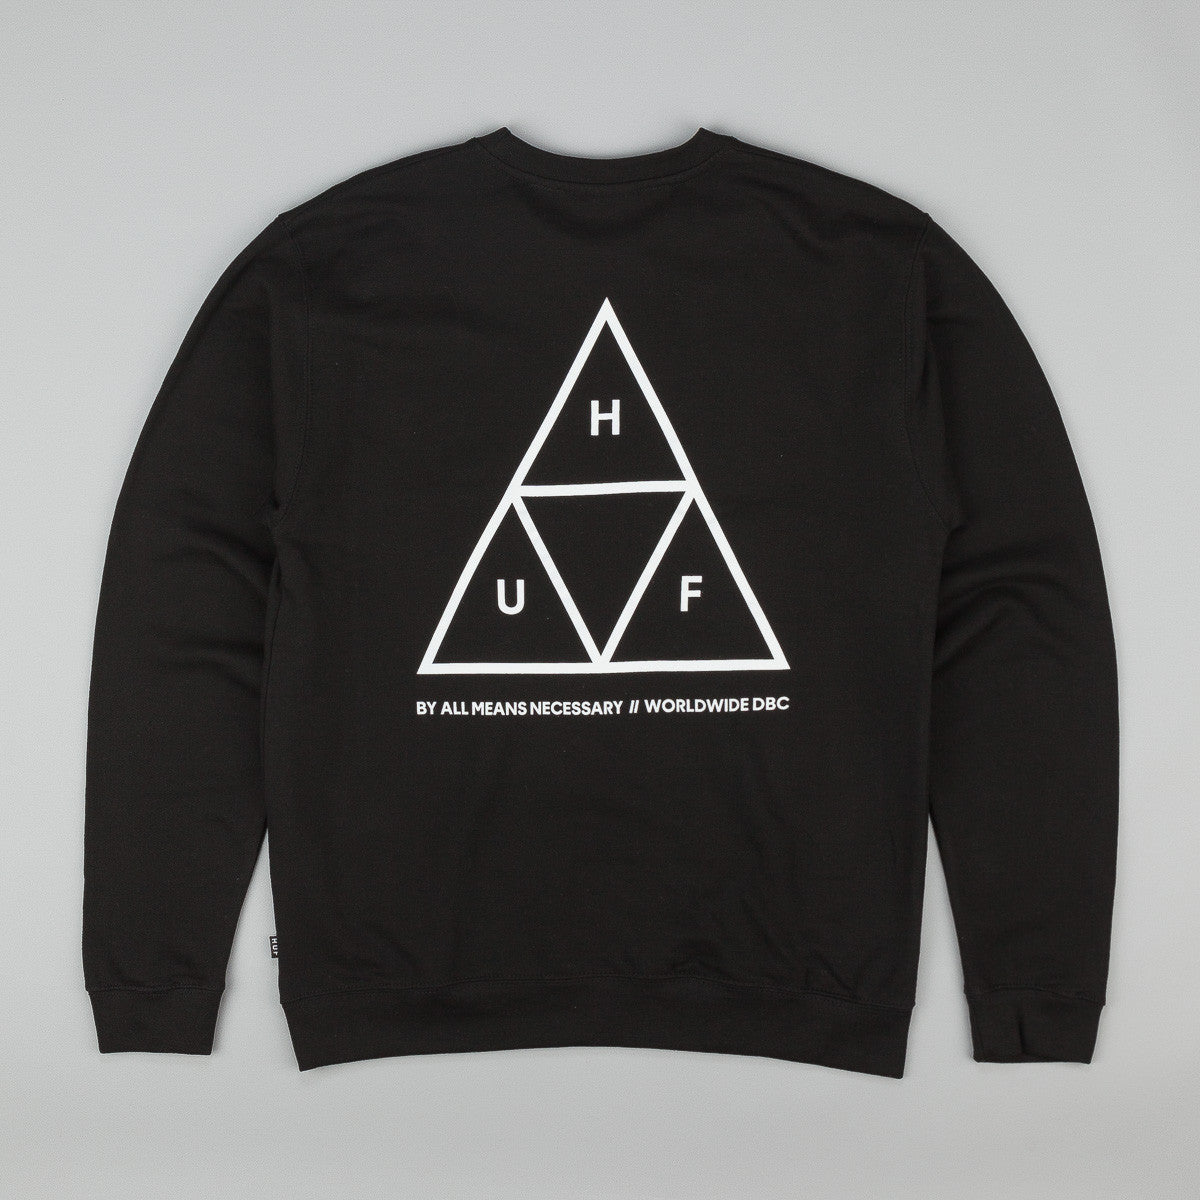 HUF Triple Triangle Crew Neck Sweatshirt - Black